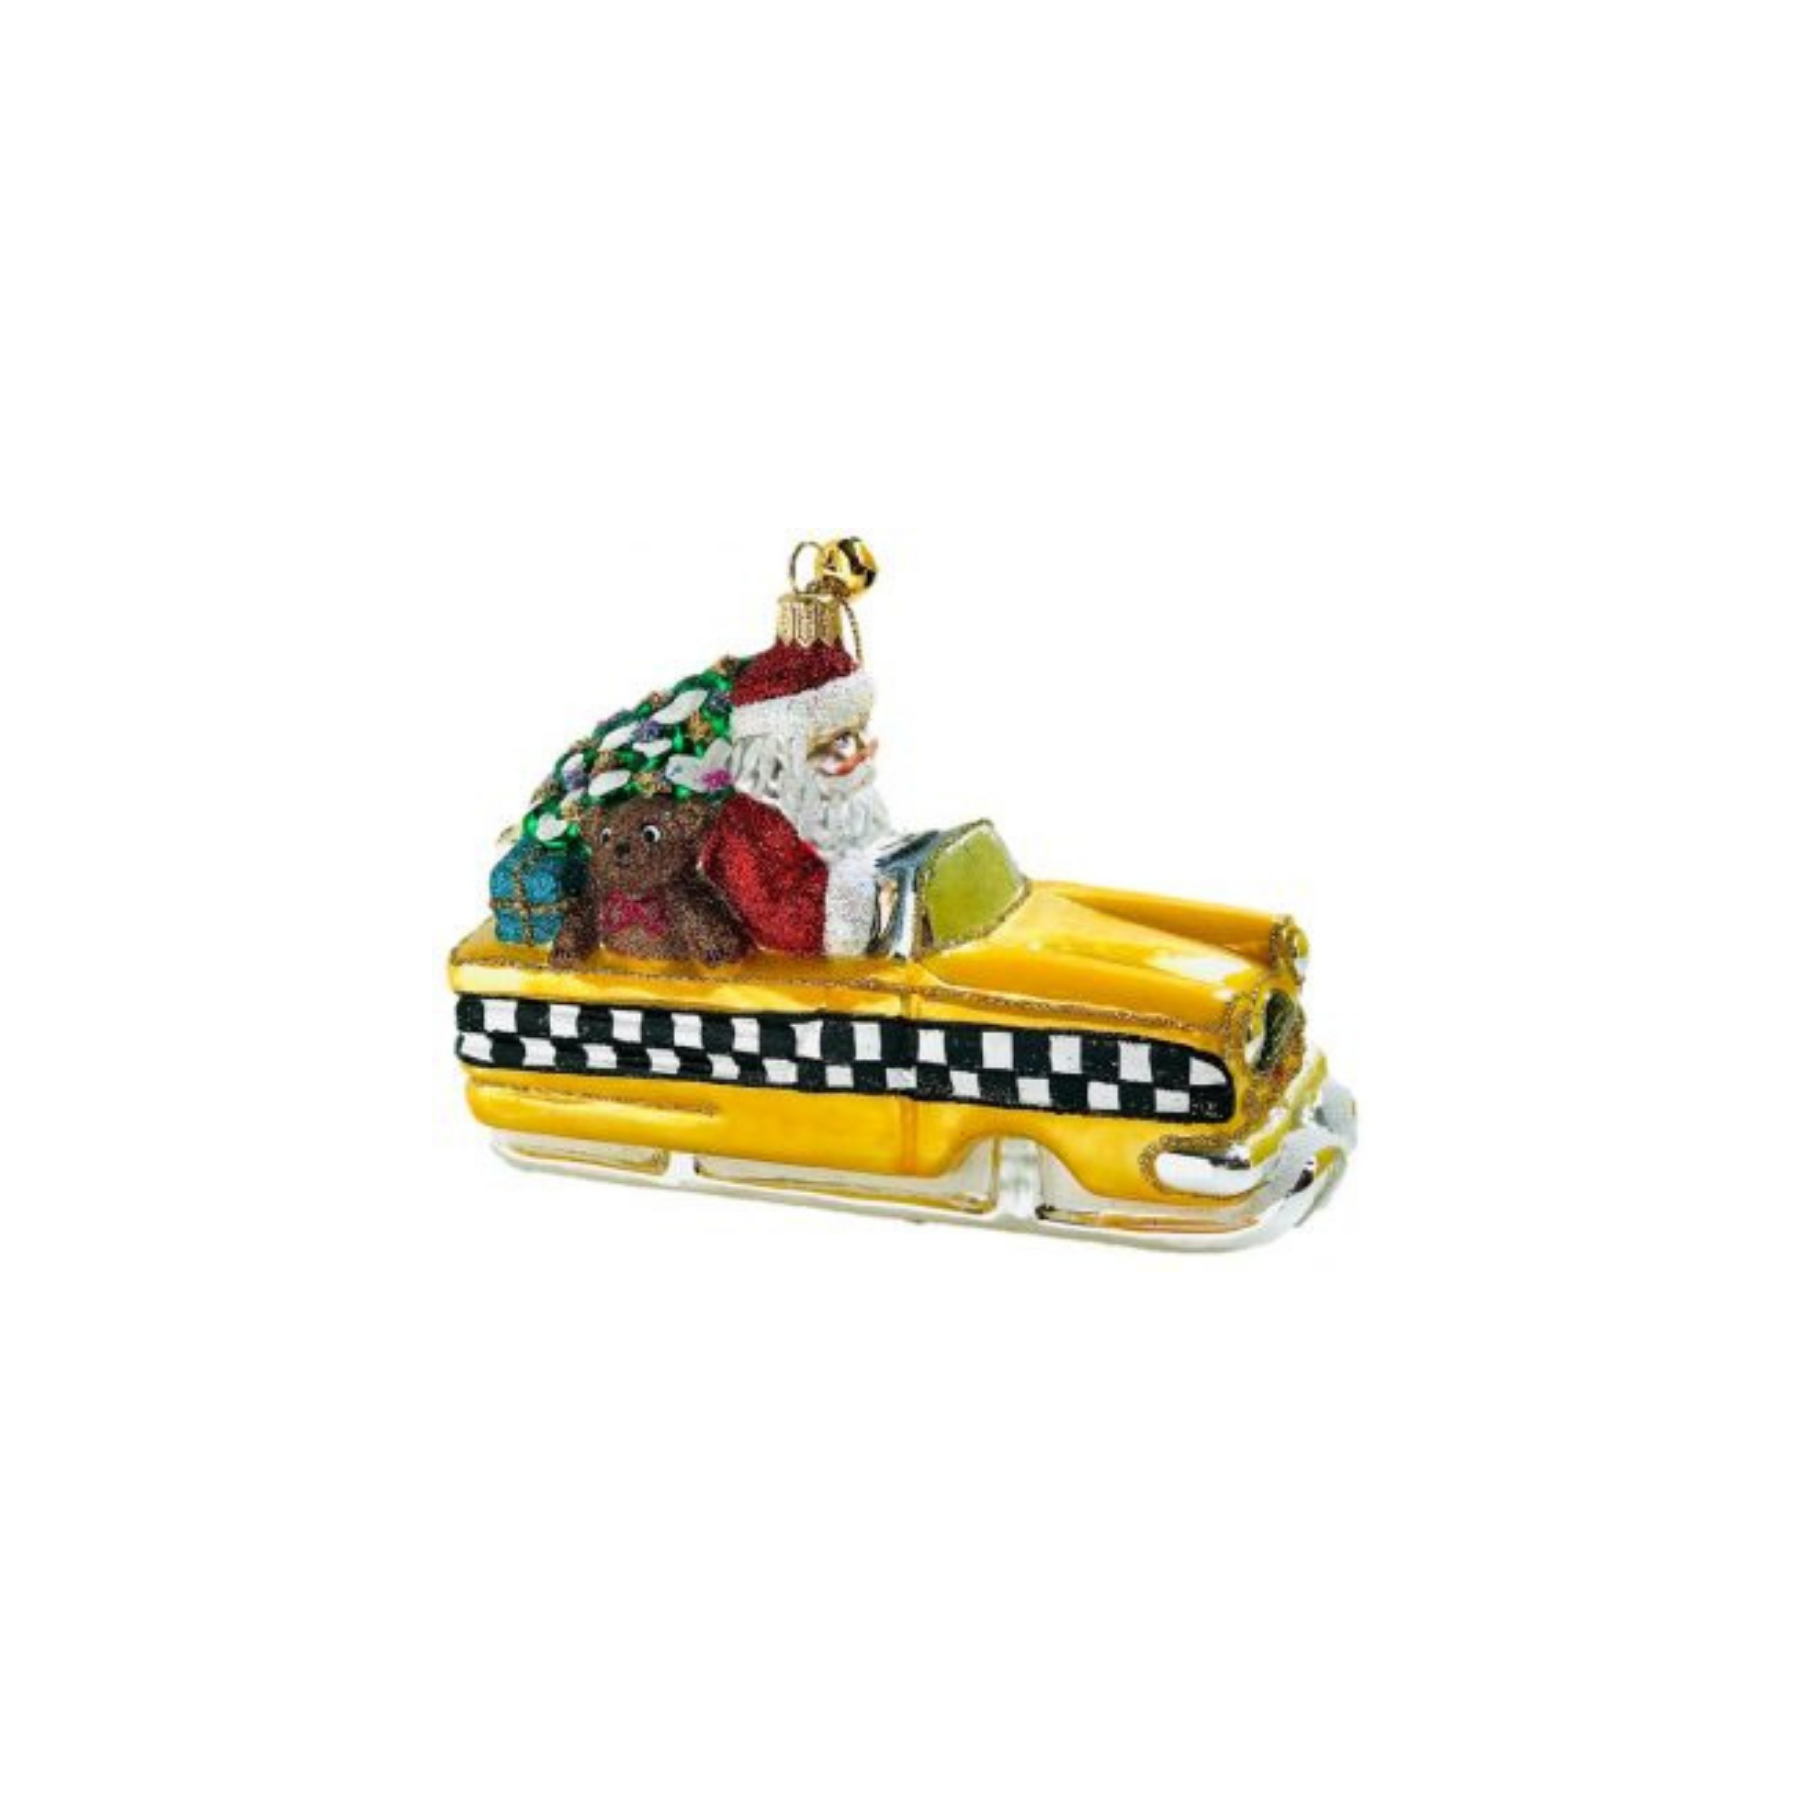 City Sno-Glide Ornament